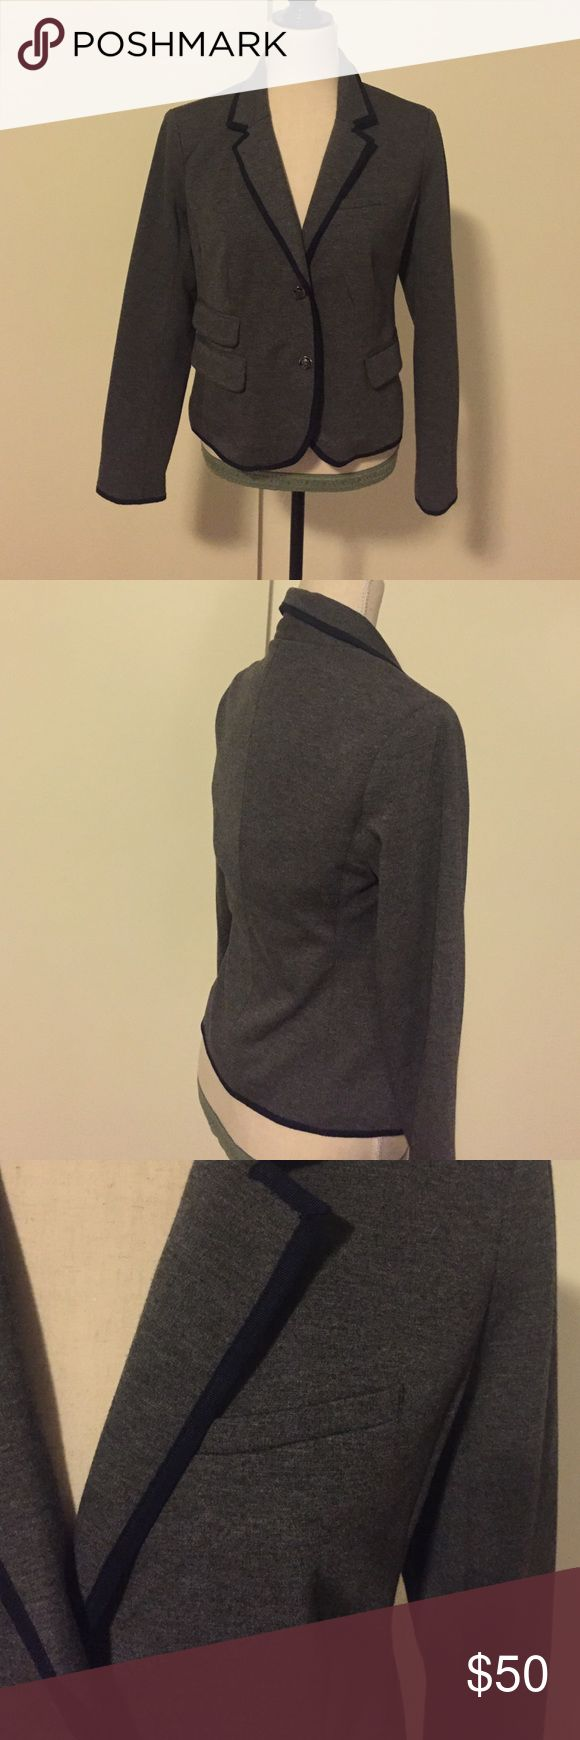 Gap outlet blazer Gap outlet blazer. Worn only once. Size 4. Very soft, beautiful blazer. Goes very cute with jeans. Pretty warm for fall.  Lined. Gap Outlet  Jackets & Coats Blazers